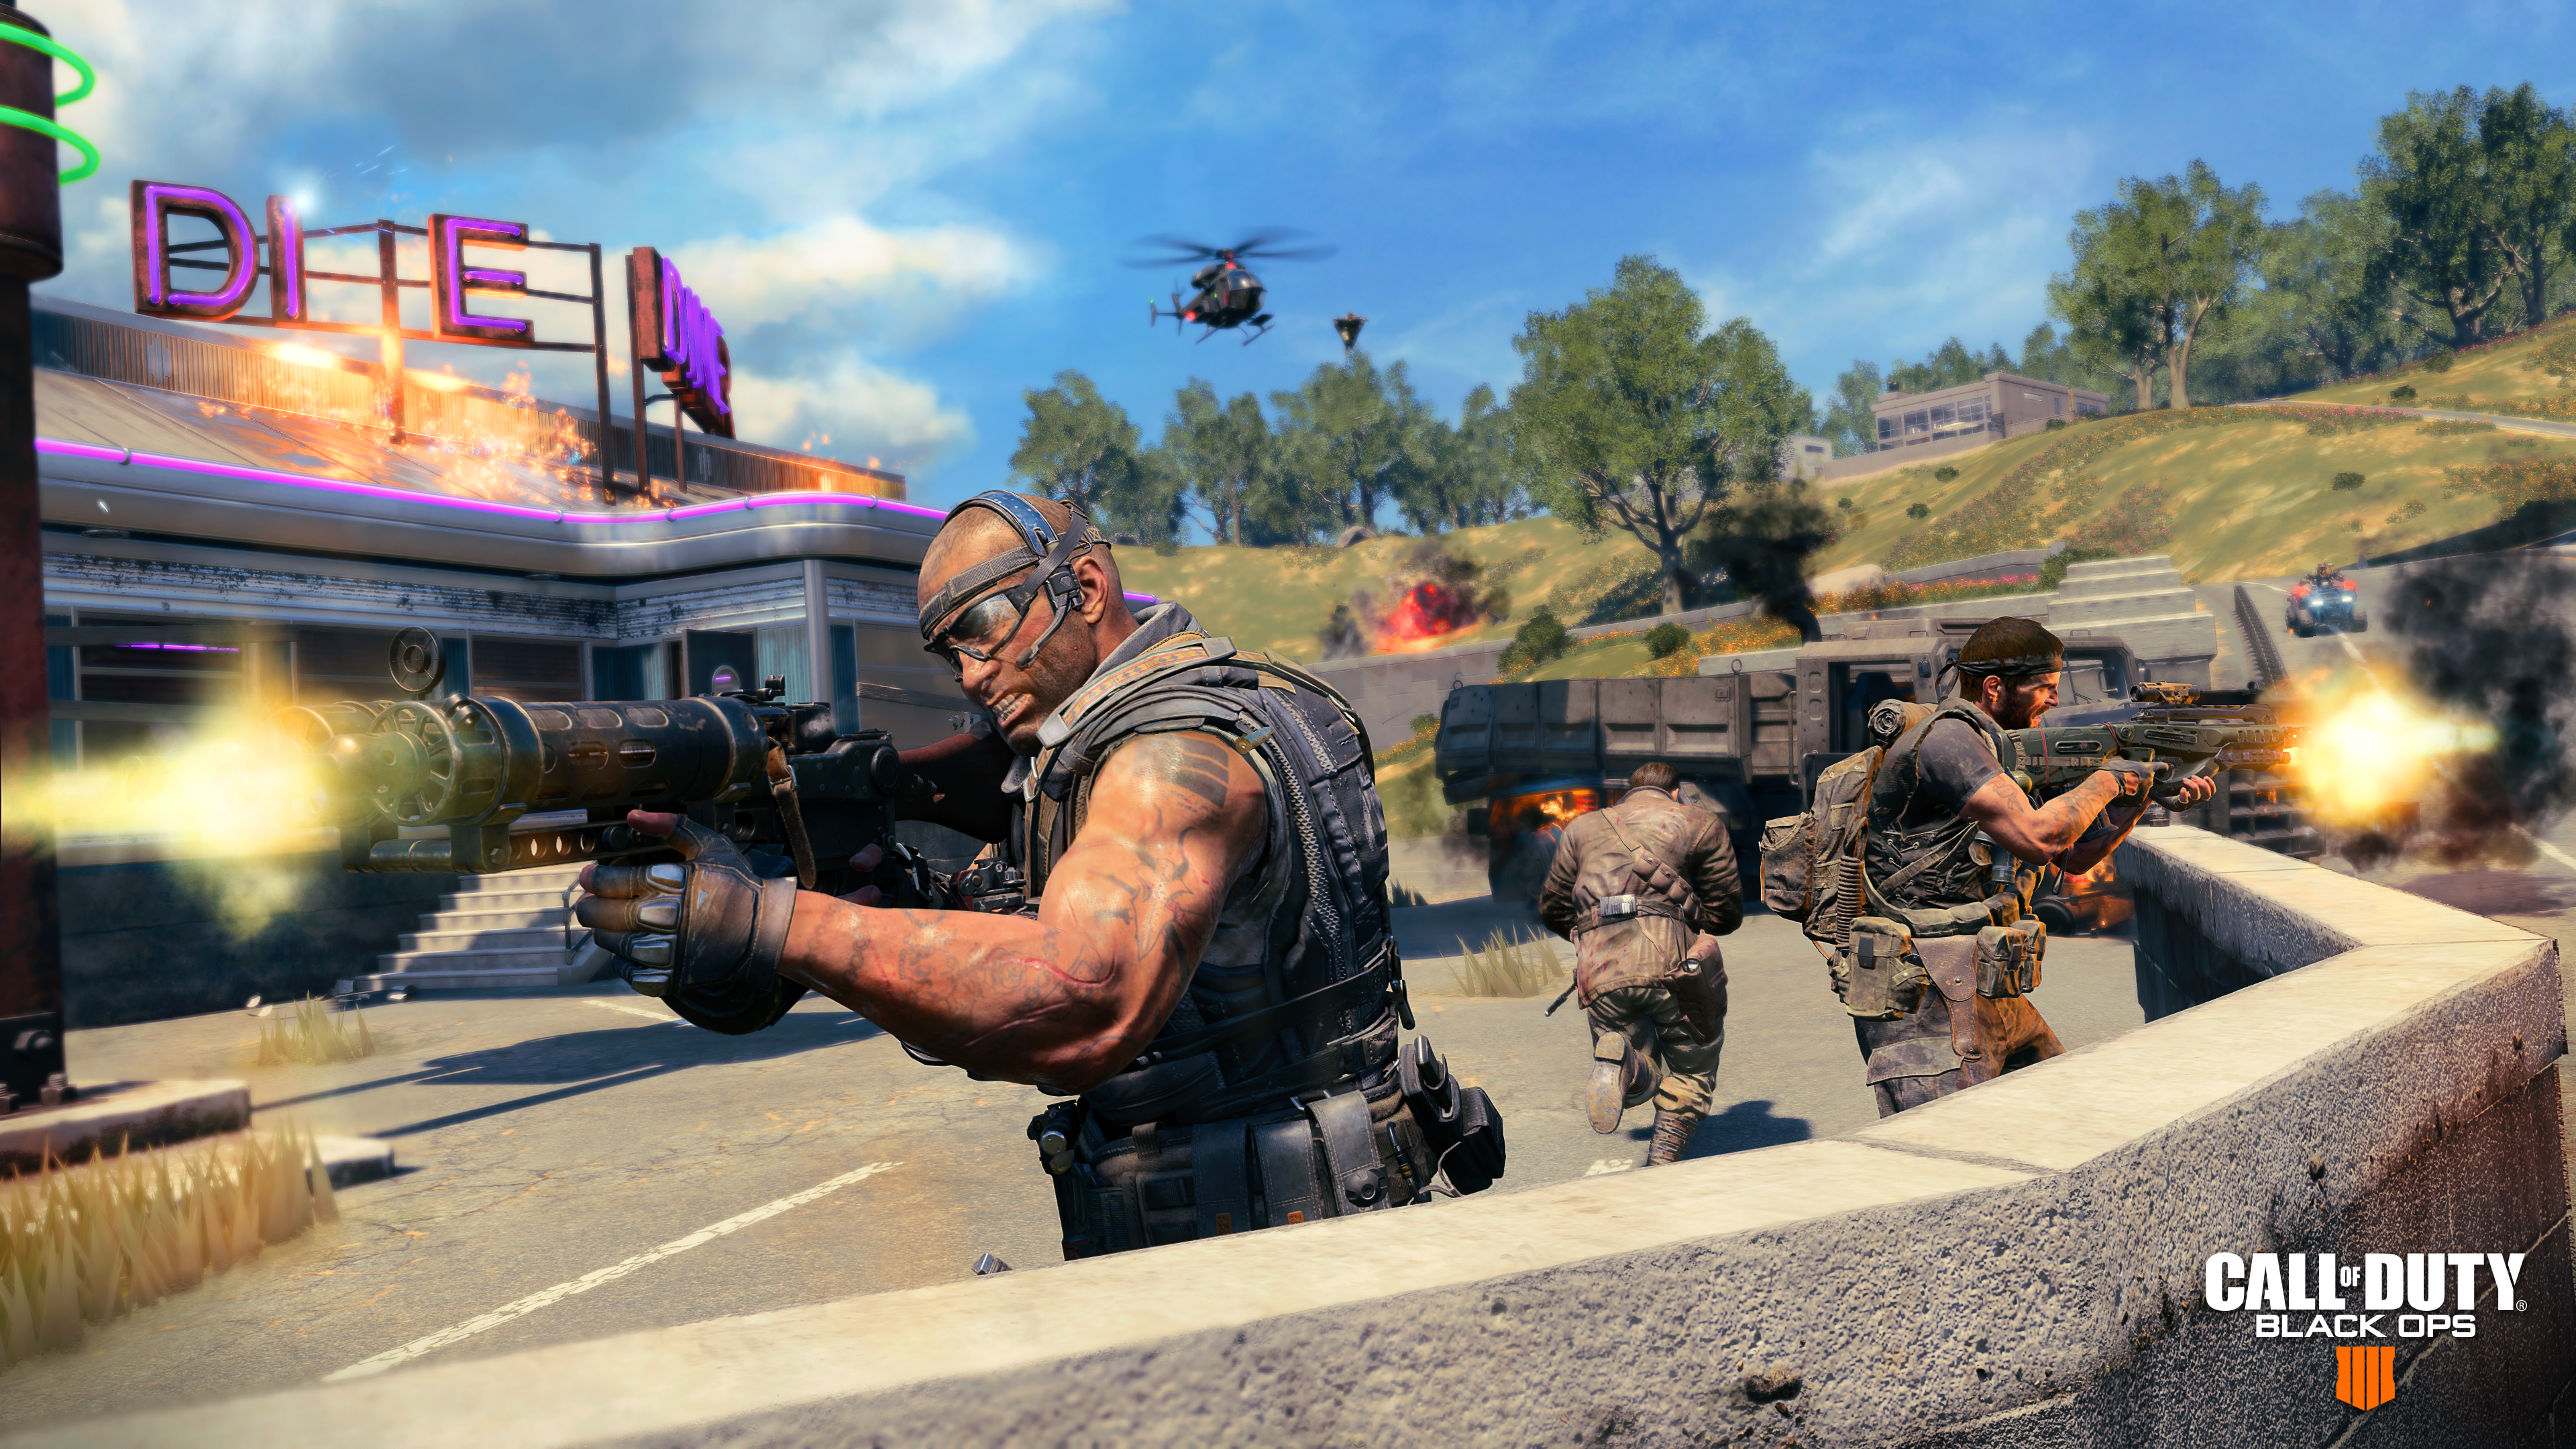 Call of Duty's battle royale mode, Blackout, is exceptional